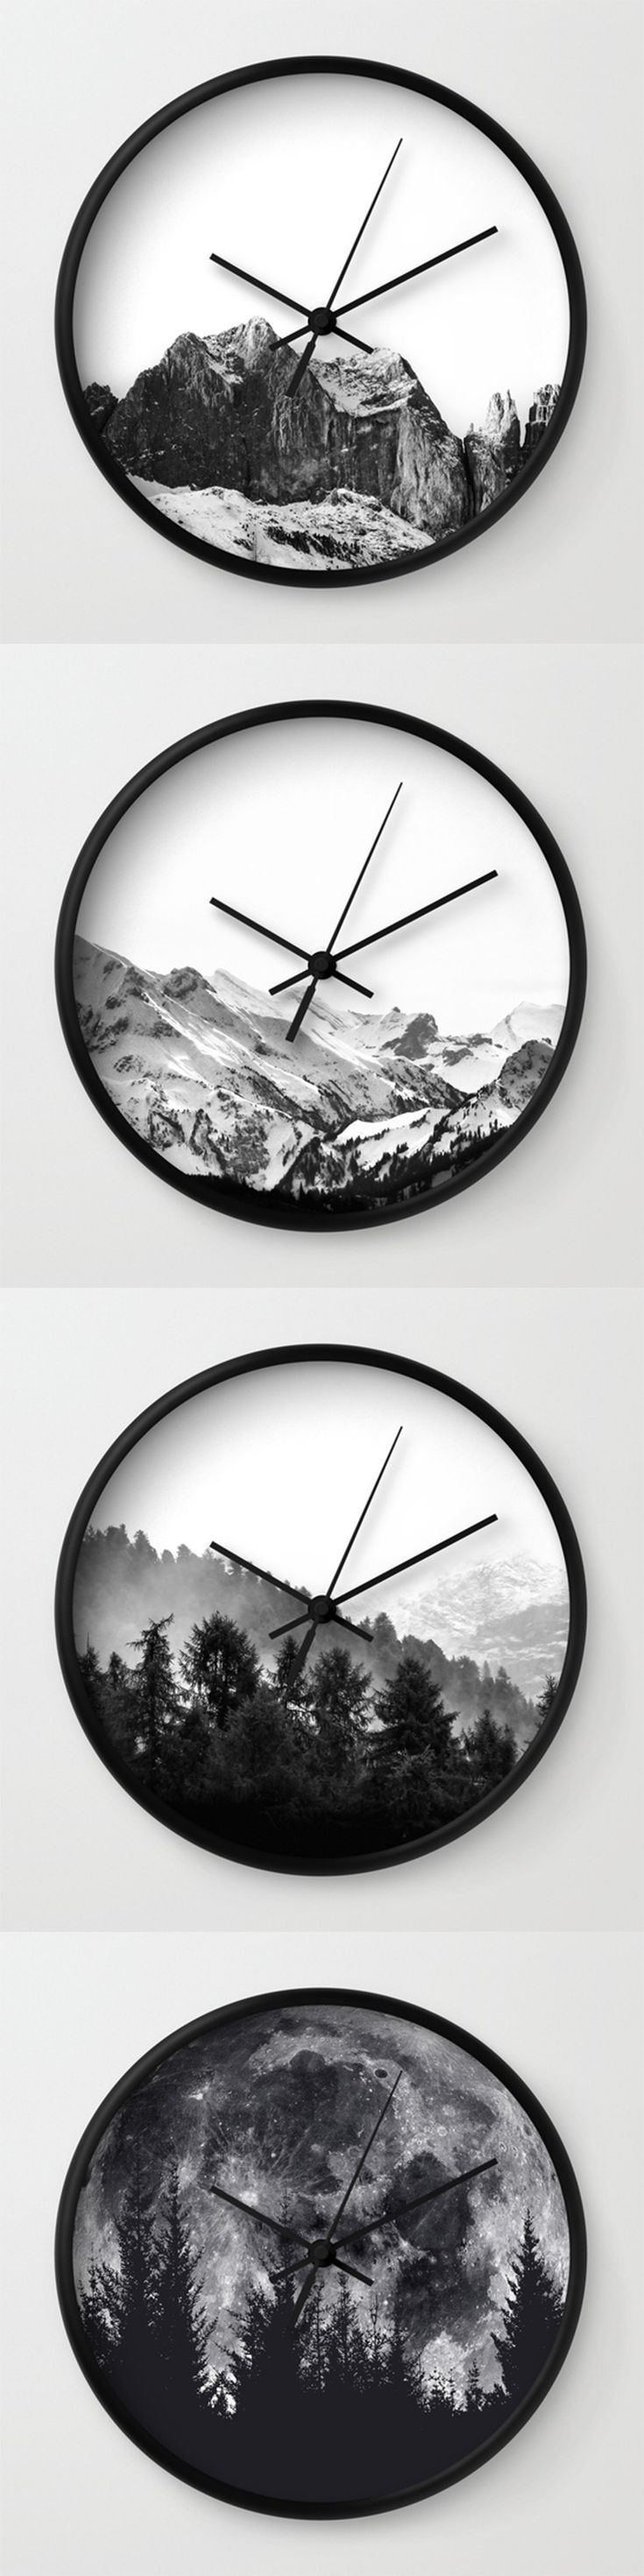 Minimalist Black And White Wall Clocks By Neptune Essentials On Society6  Home Decor, Wall Decor, Wall Clocks, Hanging Clocks, Minimalist Clocks,  Modern ...